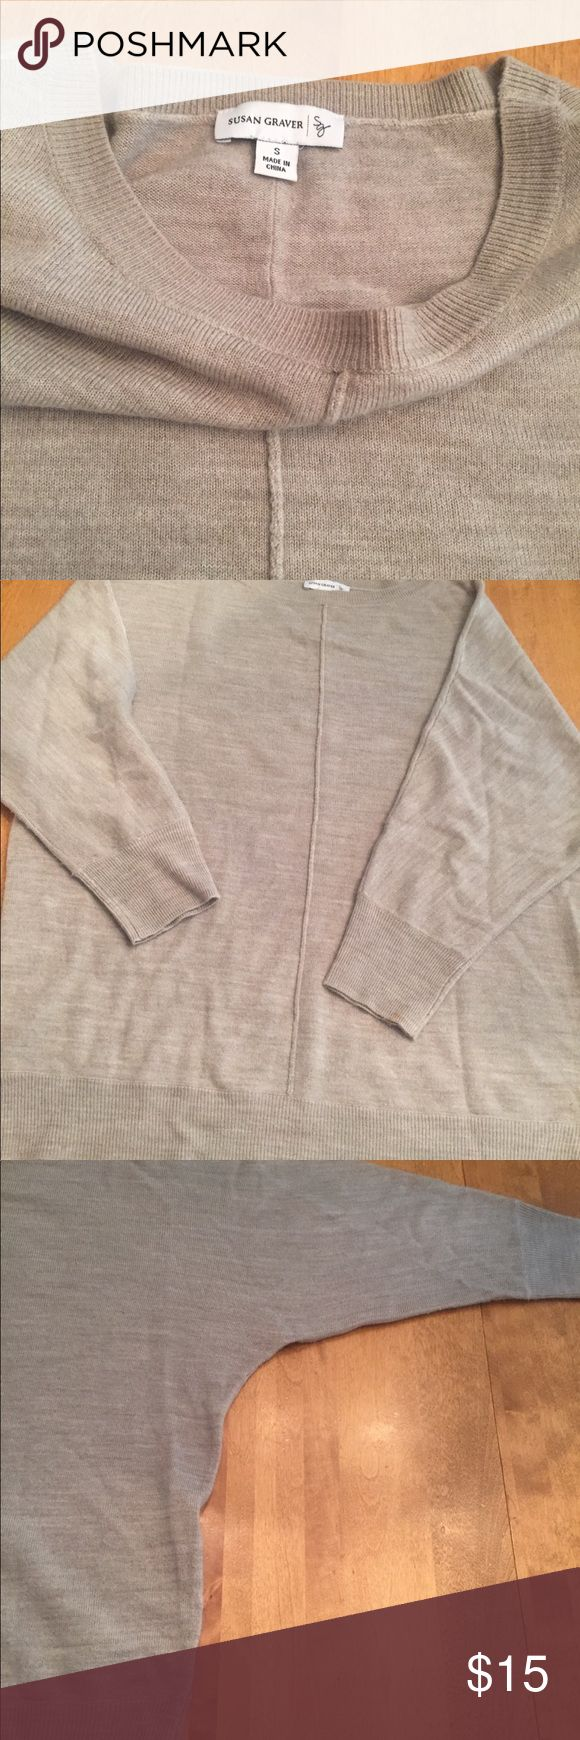 Susan Graver Plush Knit Sweater Sz S Susan Graver Plush Knit (feels like cashmere) bateau neck dolman sleeve sweater in heathered oatmeal. Size small. Worn just a few times, in excellent condition. Bought on QVC for $50. Very soft and comfy. Looks great over leggings or skinny jeans. Susan Graver Sweaters Crew & Scoop Necks